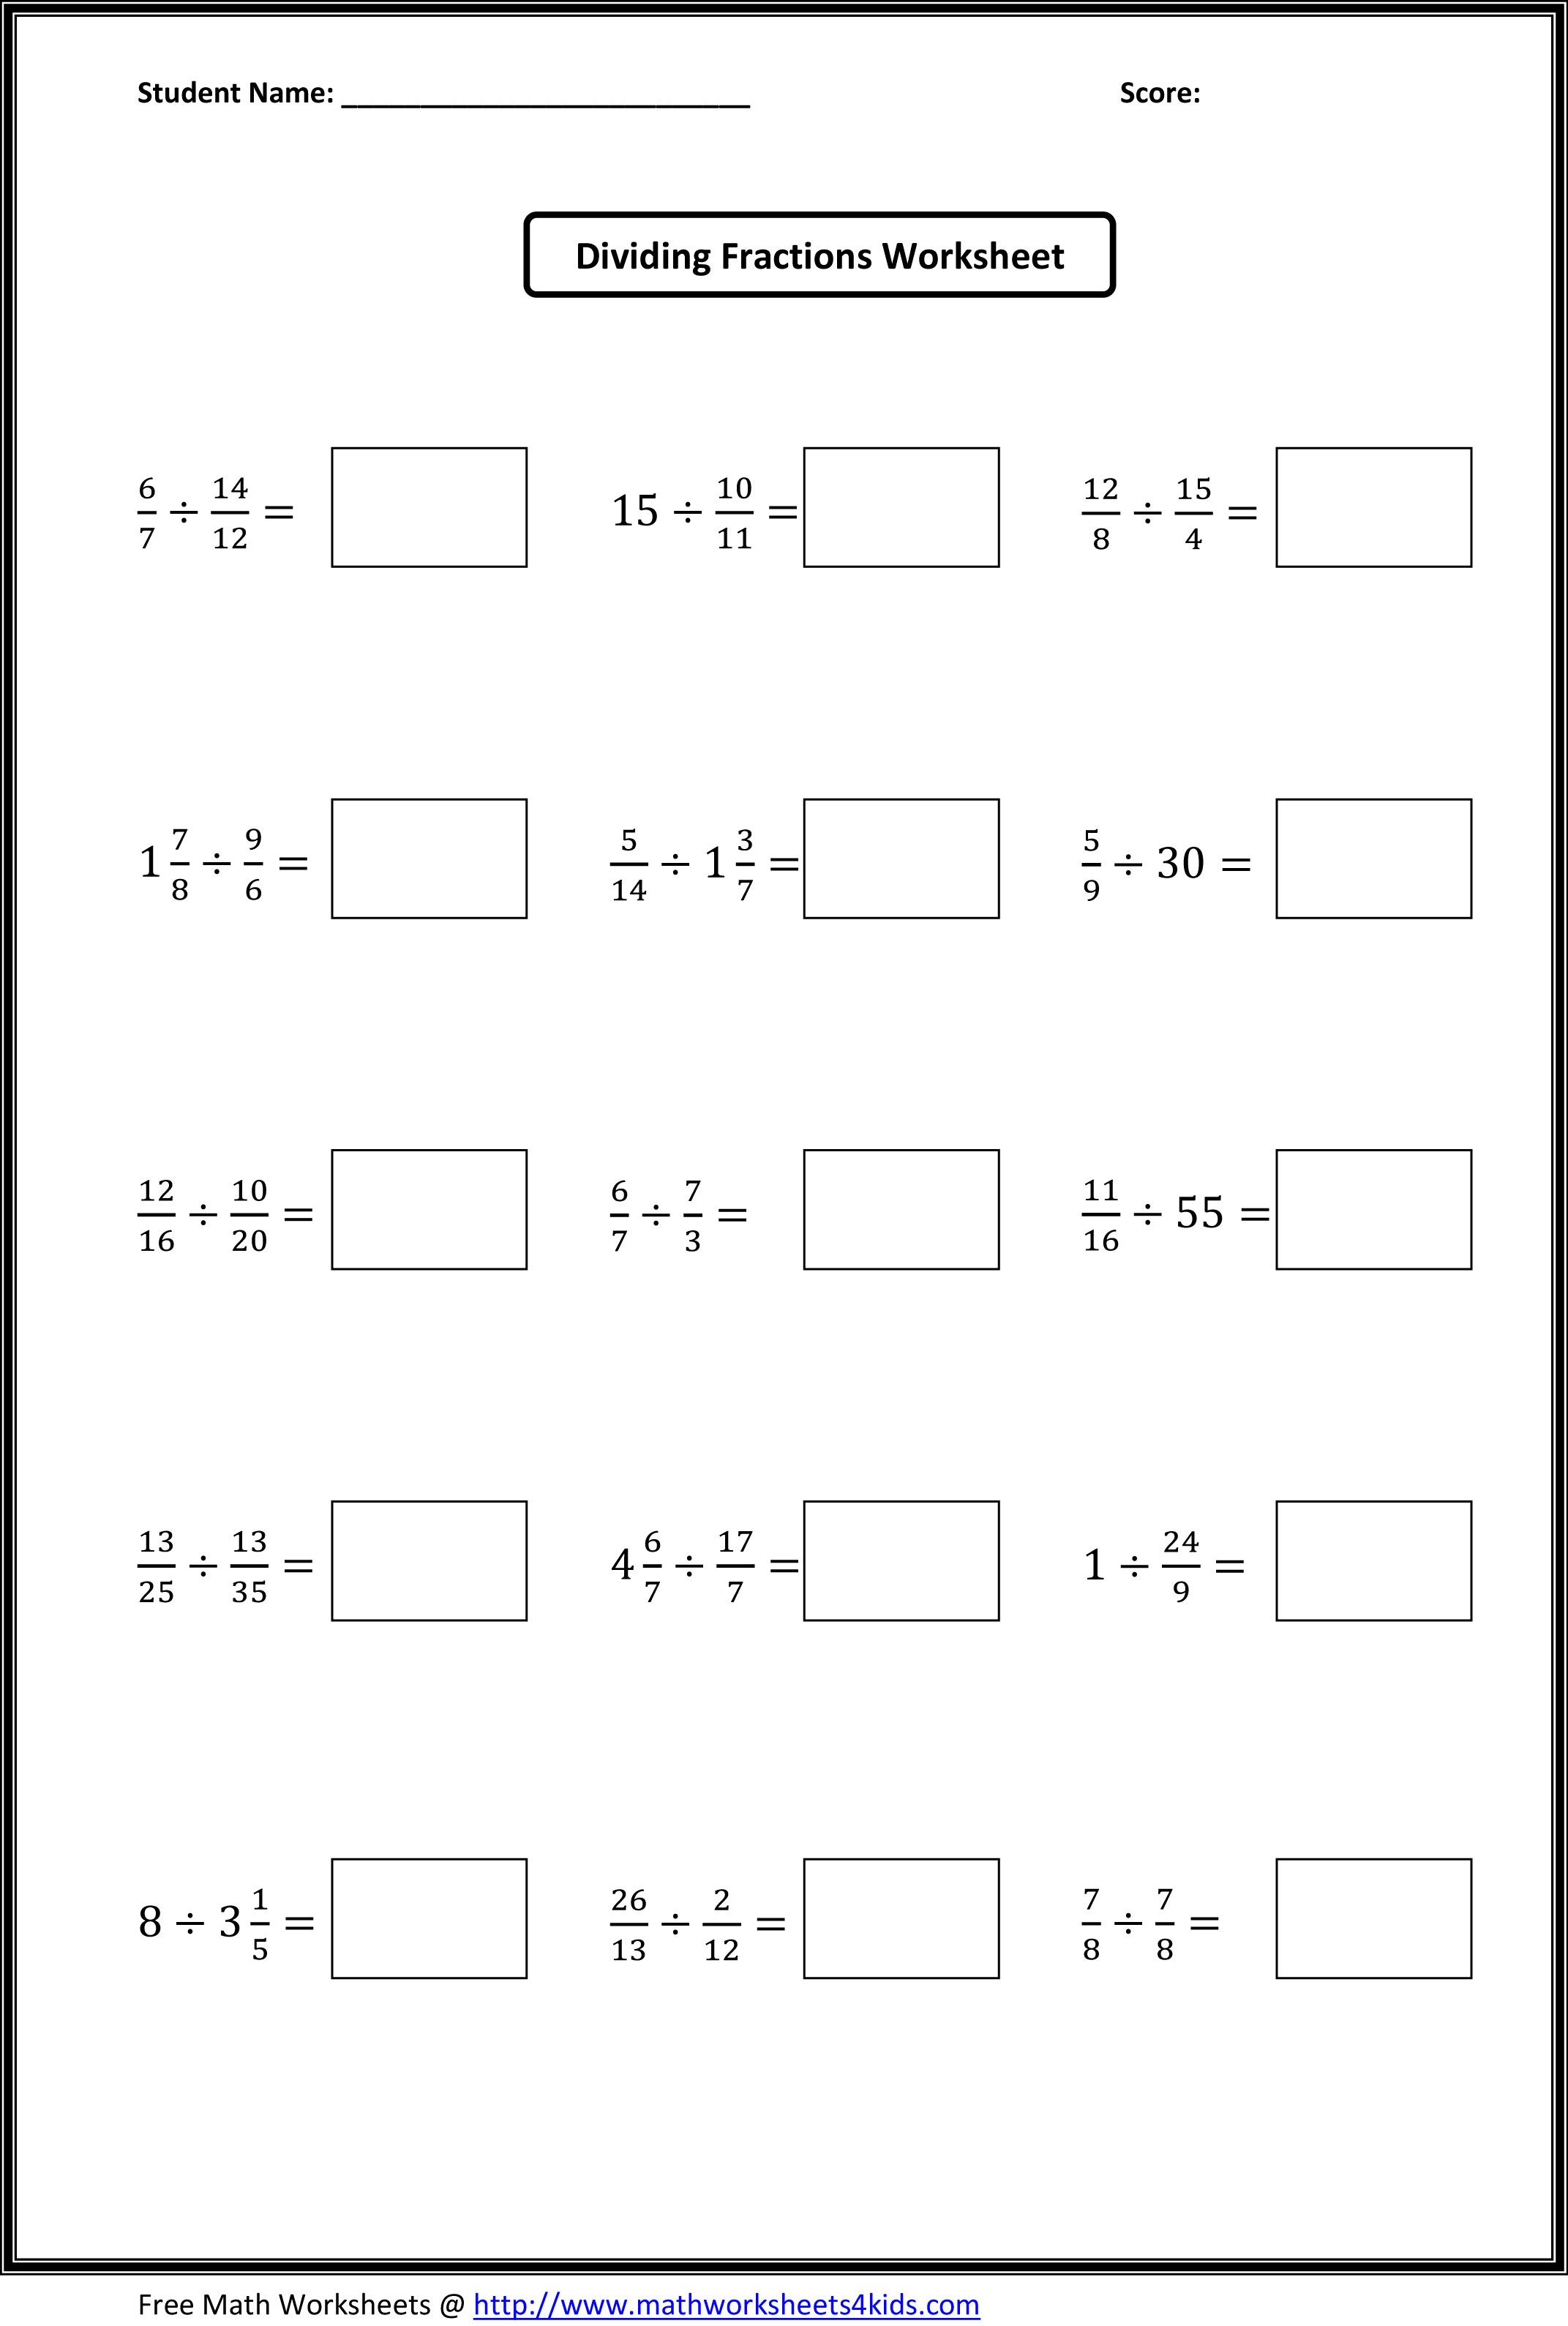 Dividing Fractions Worksheets | What\'s New | Pinterest | Dividing ...